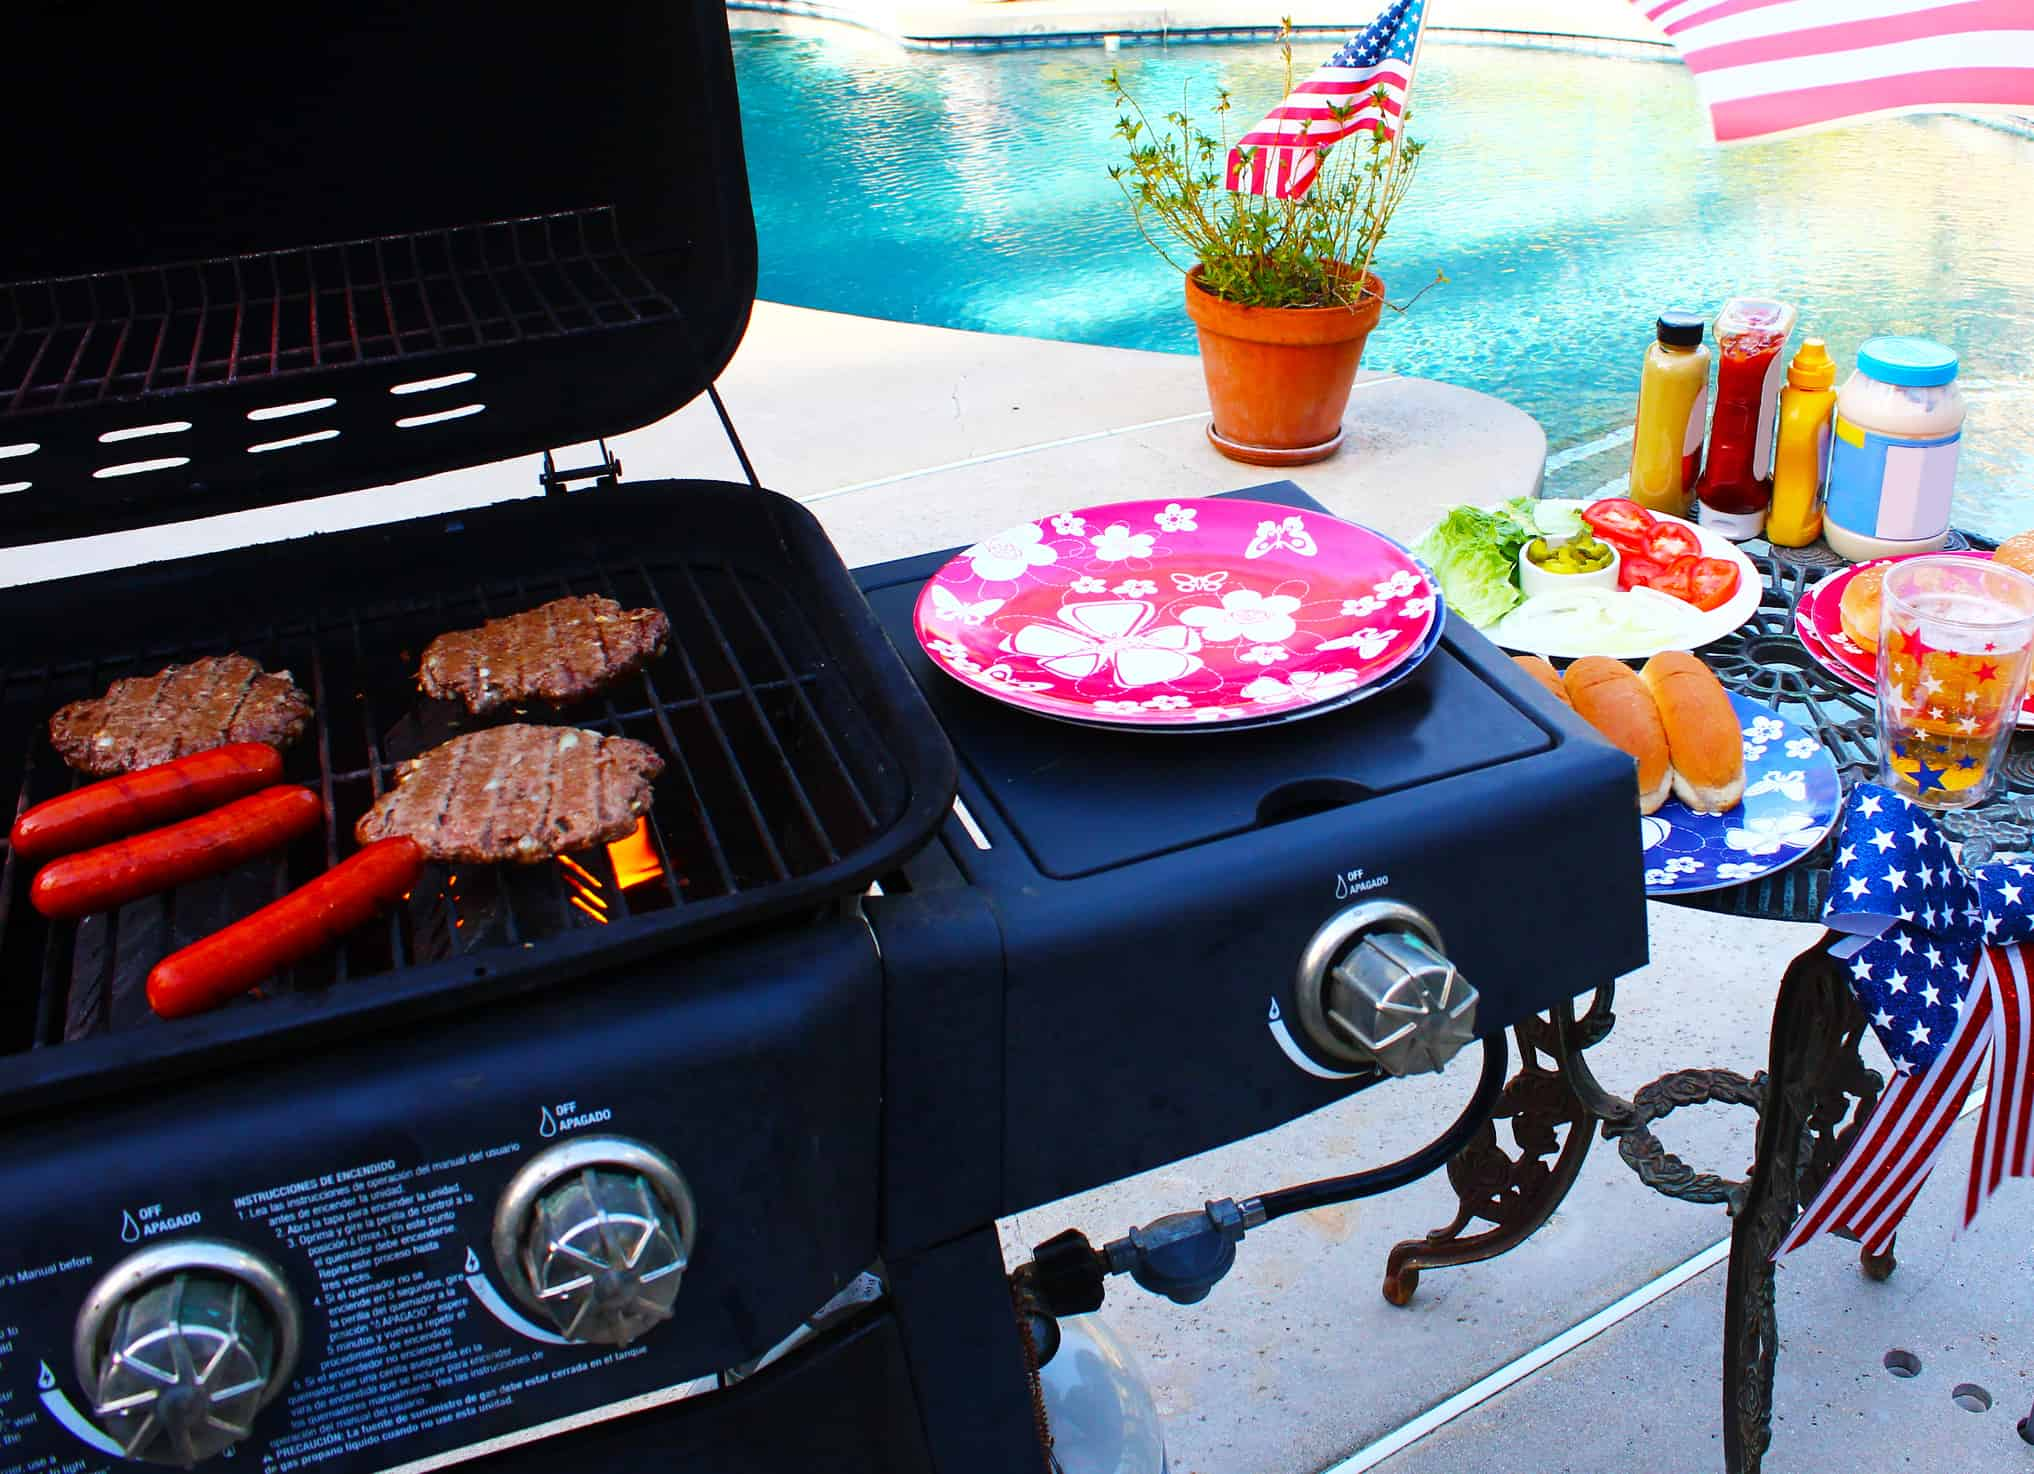 Gas grill by the swimming pool ready to BBQ.